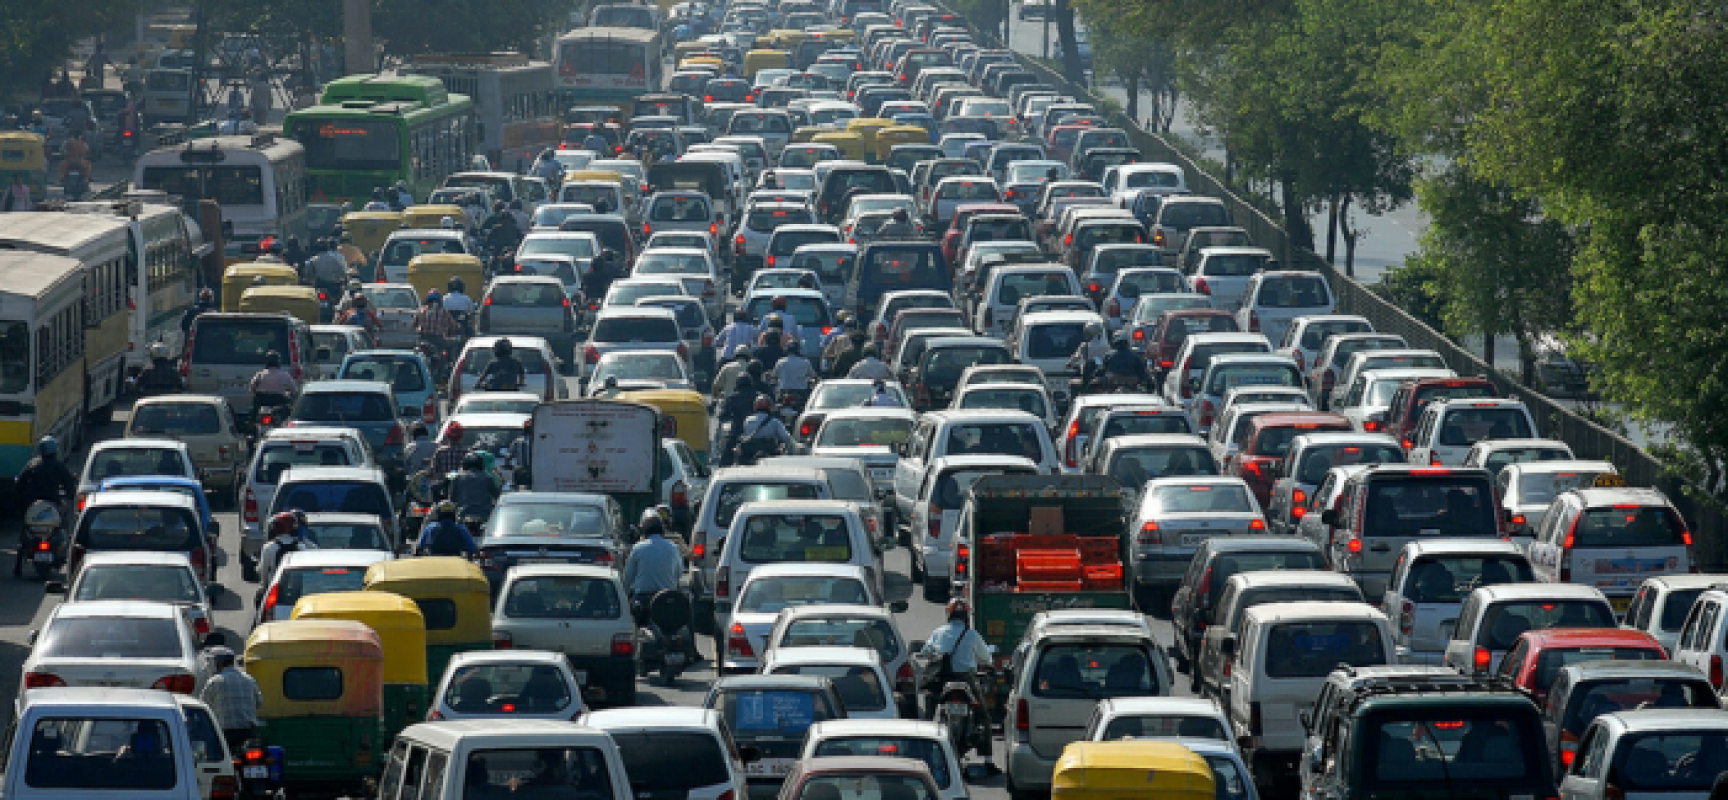 How Big Cities Are Coping With Congestion